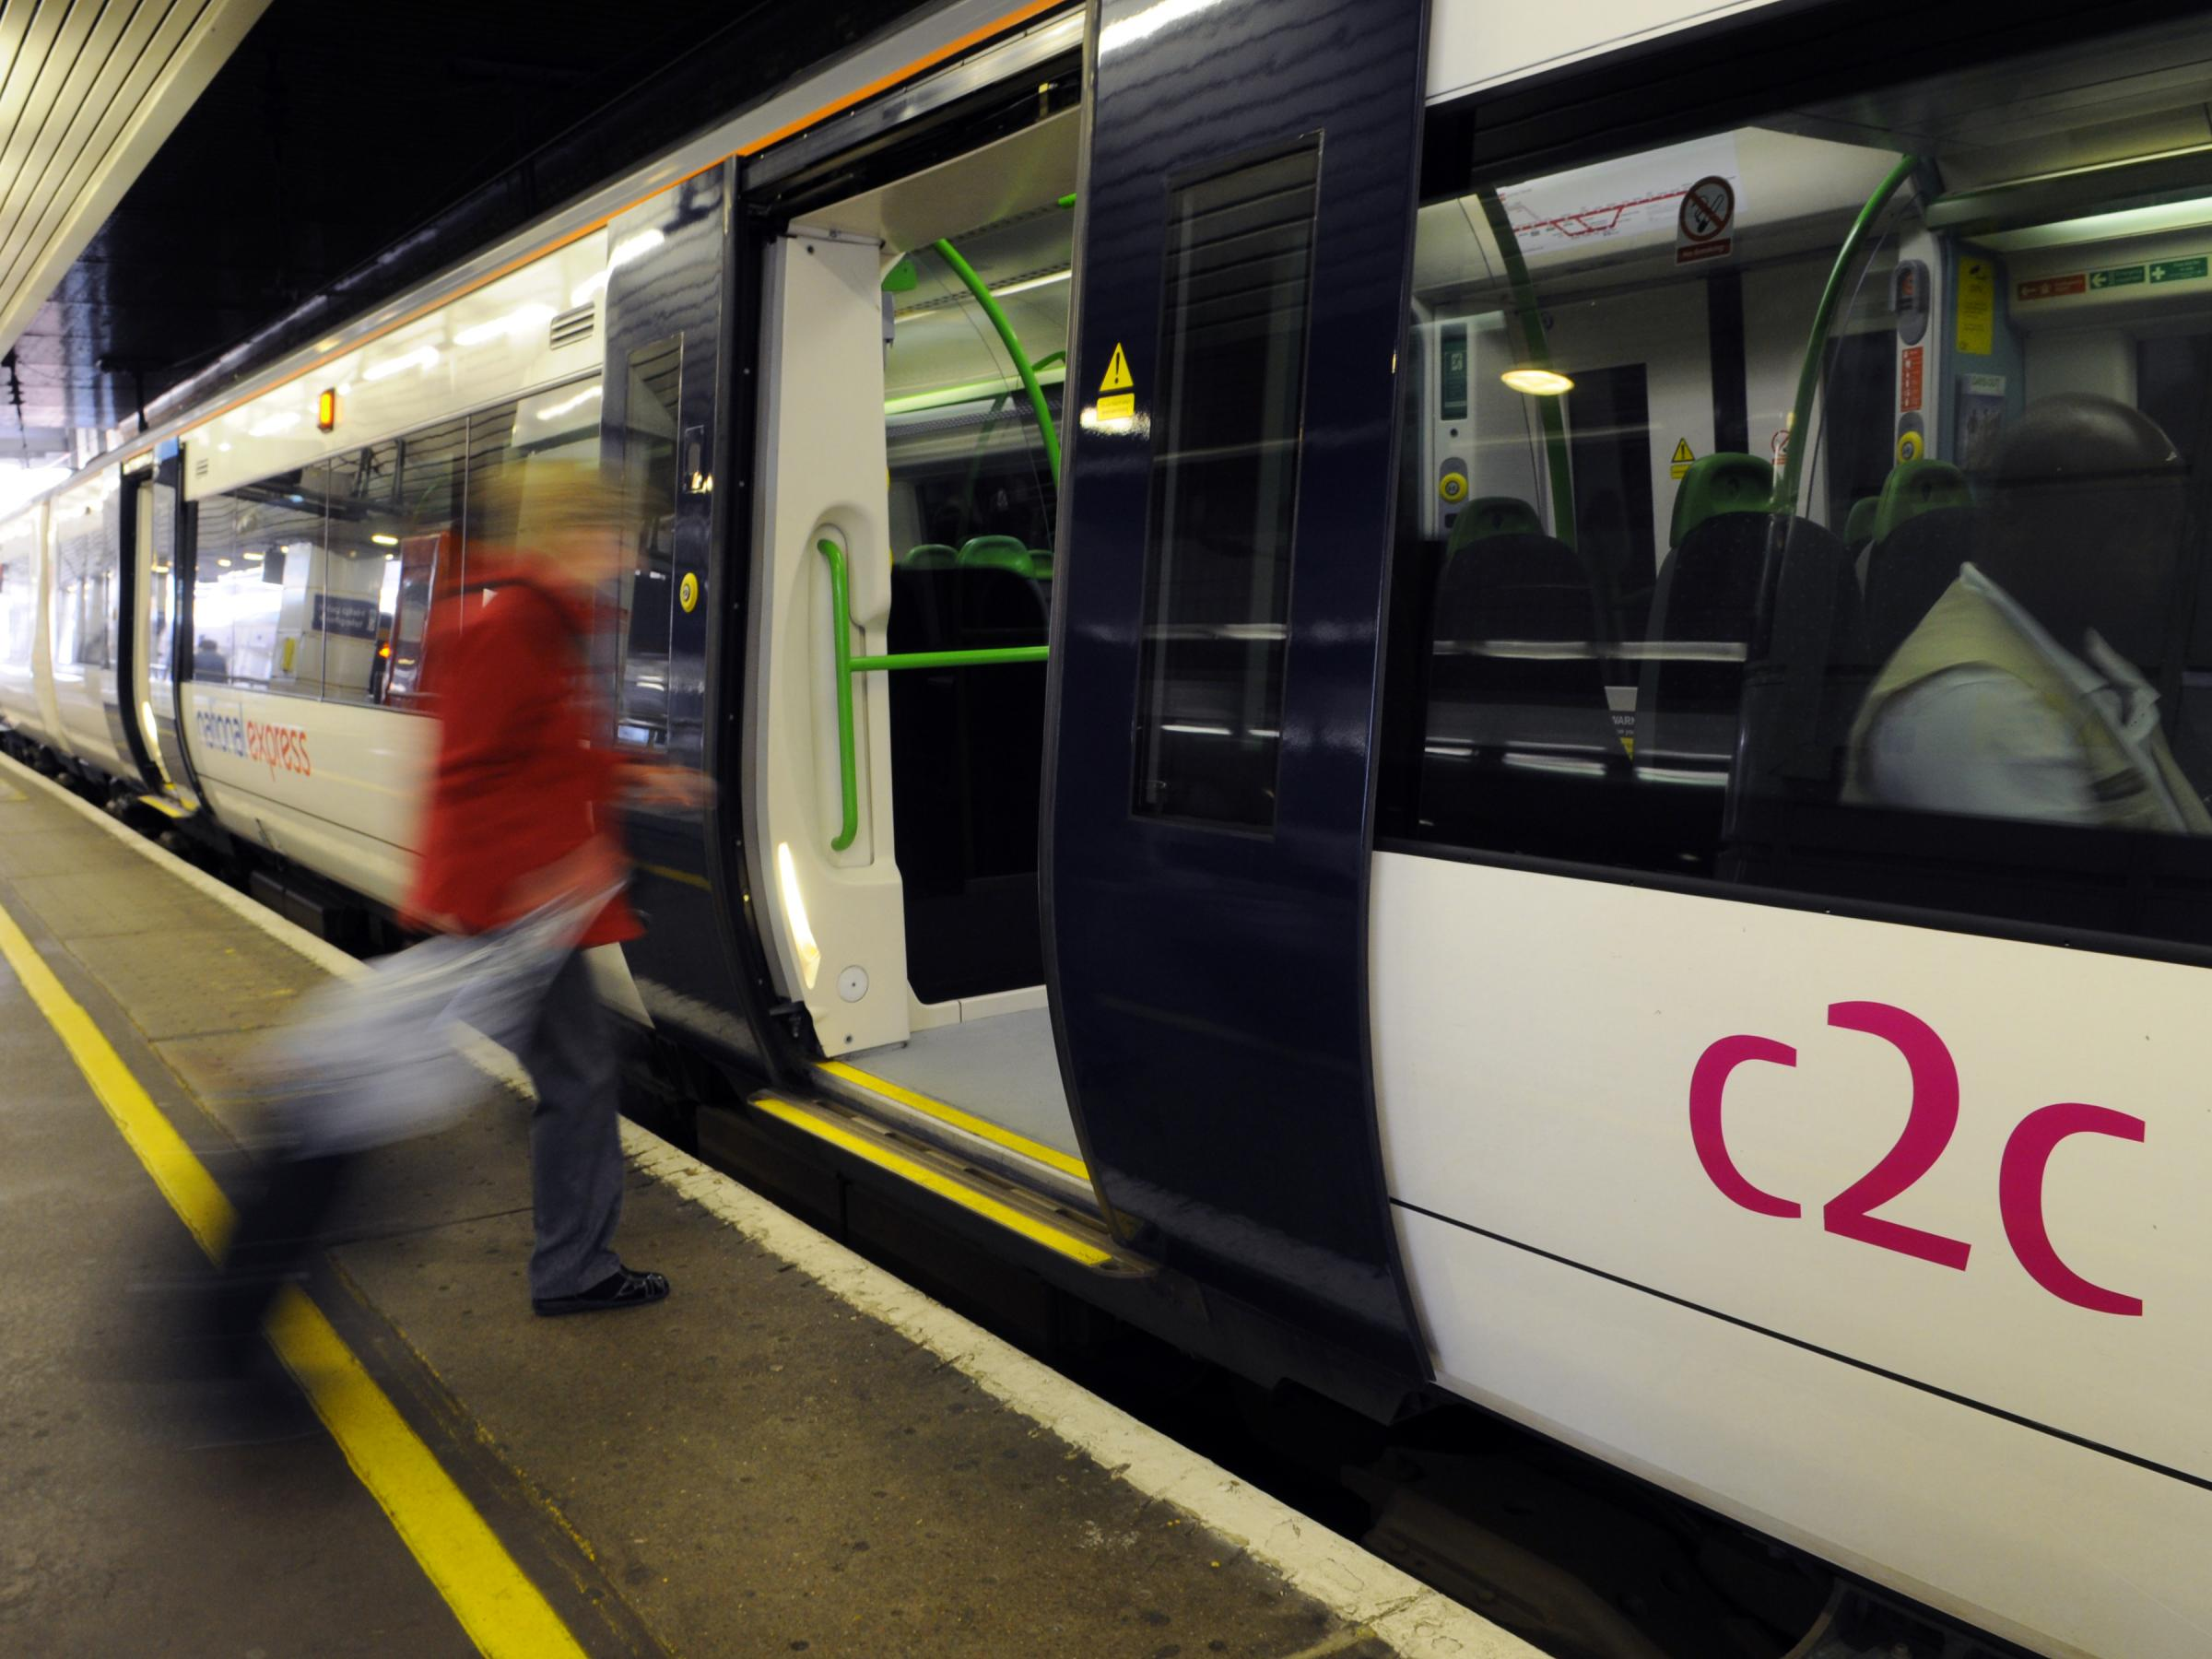 Passenger on c2c trains the most 'satisfied'